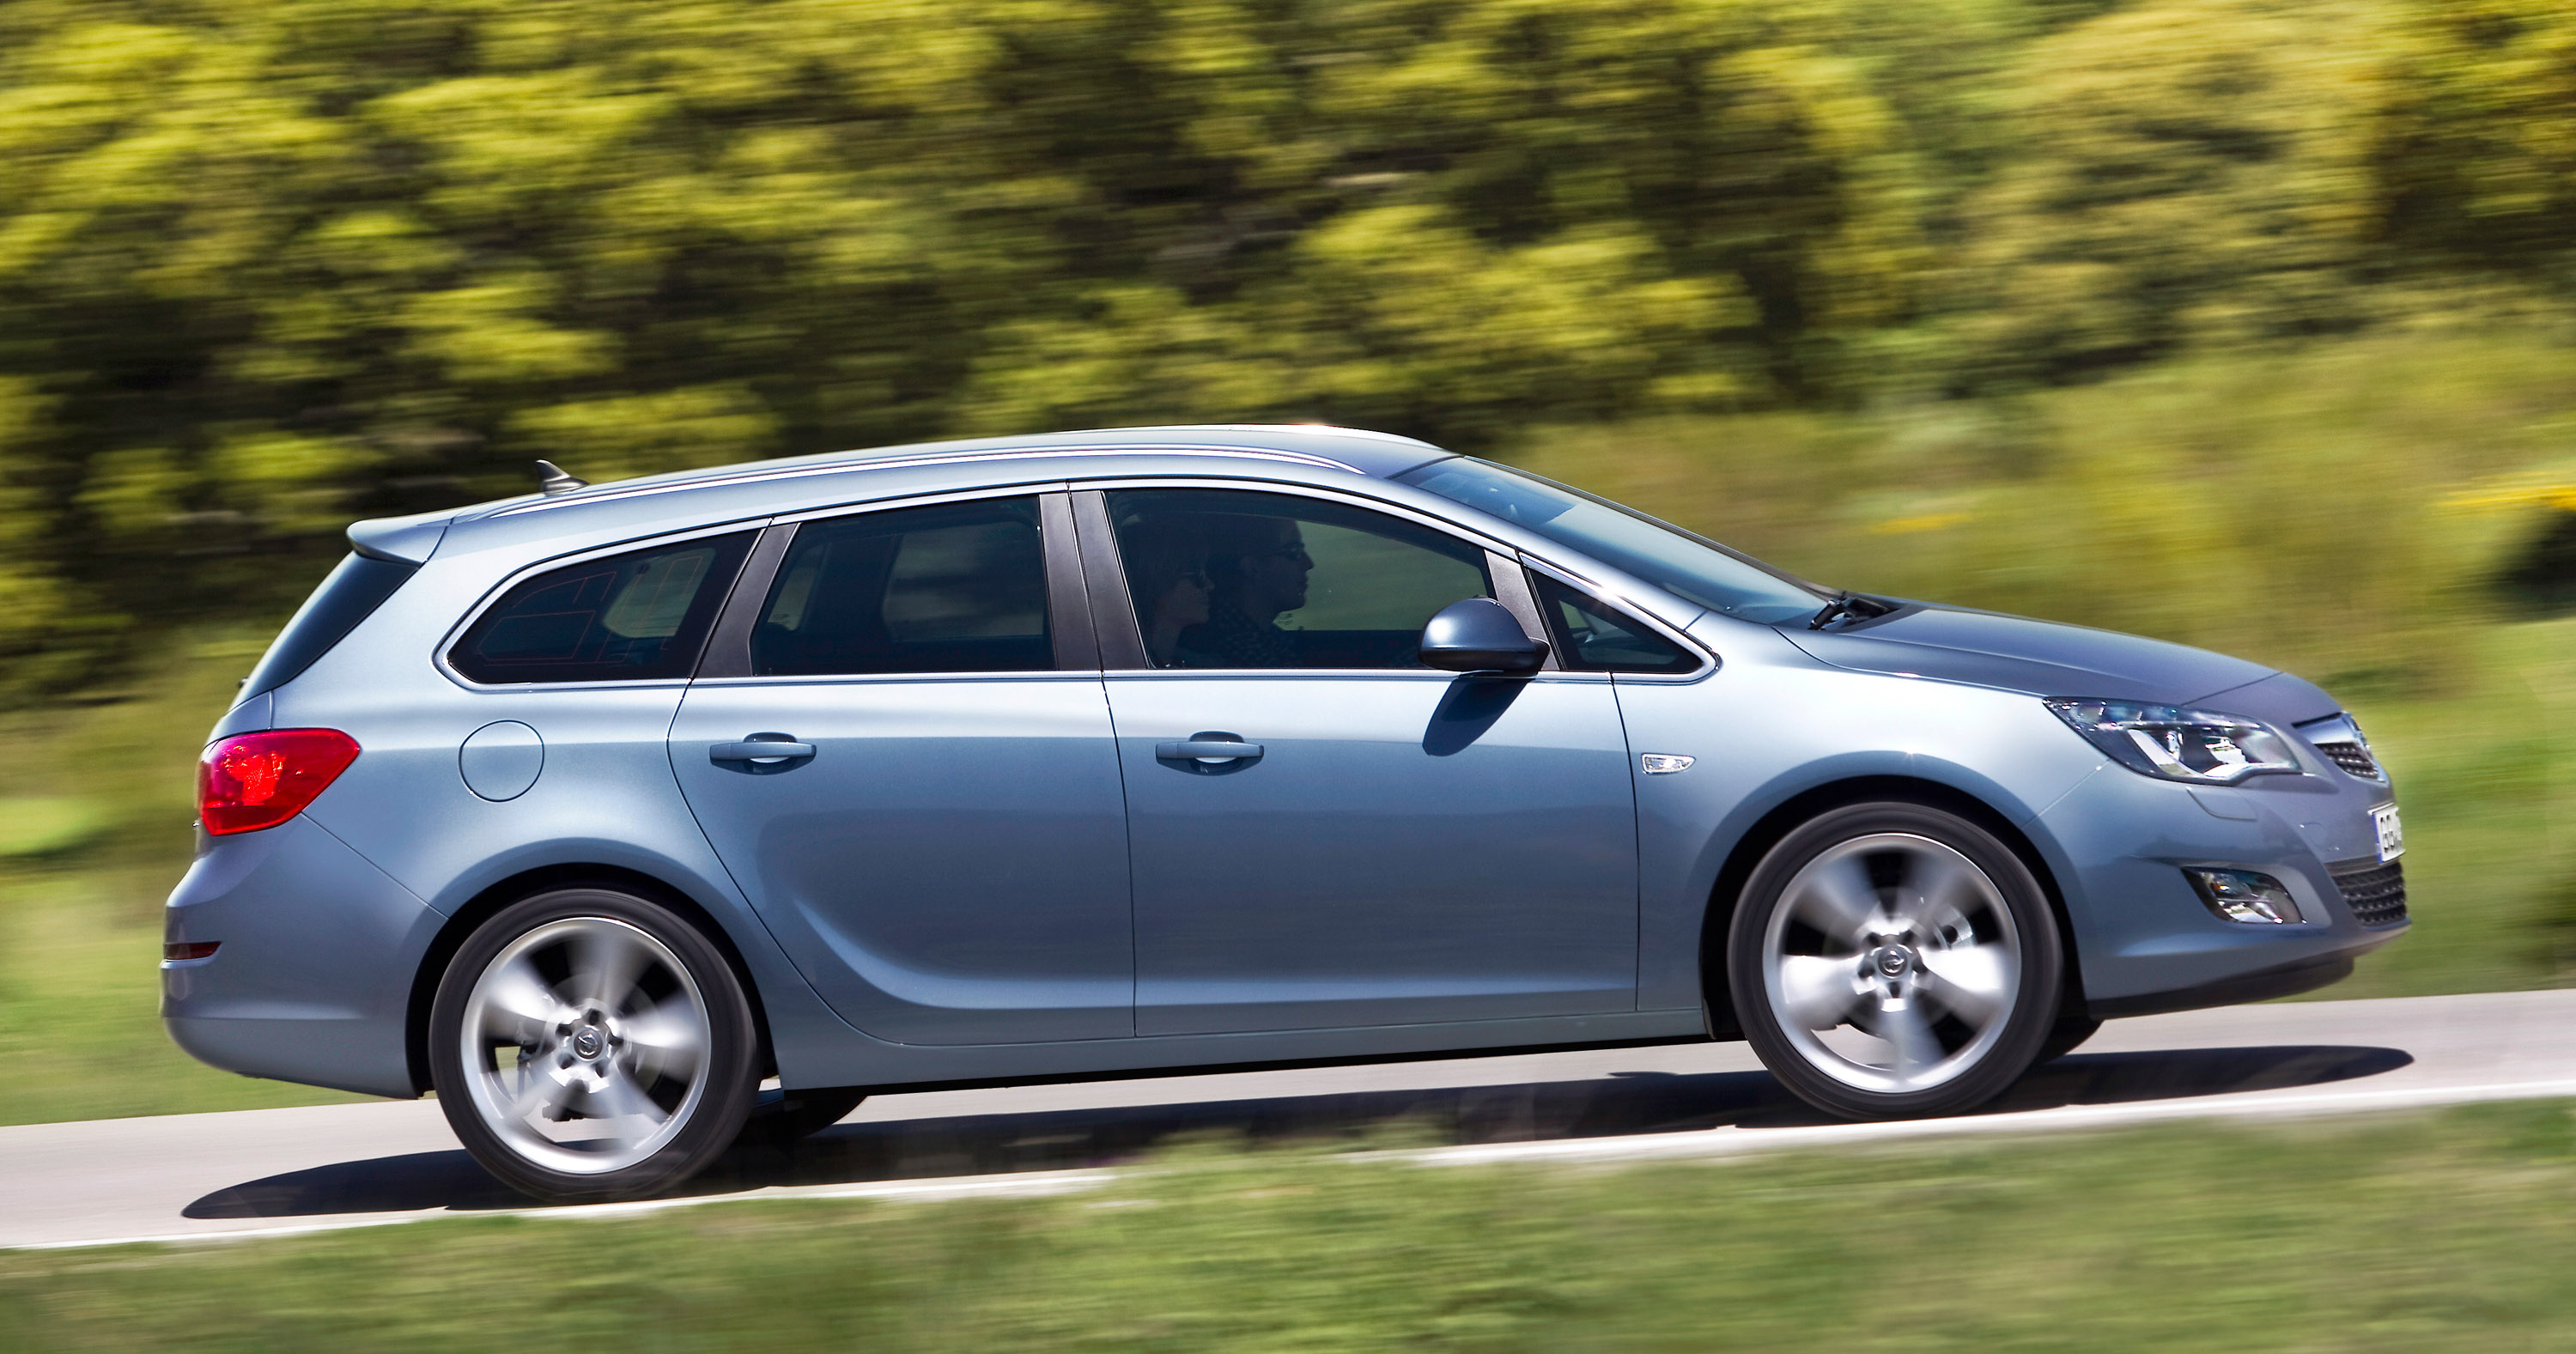 2011-opel-astra-sports-tourer-05.jpg